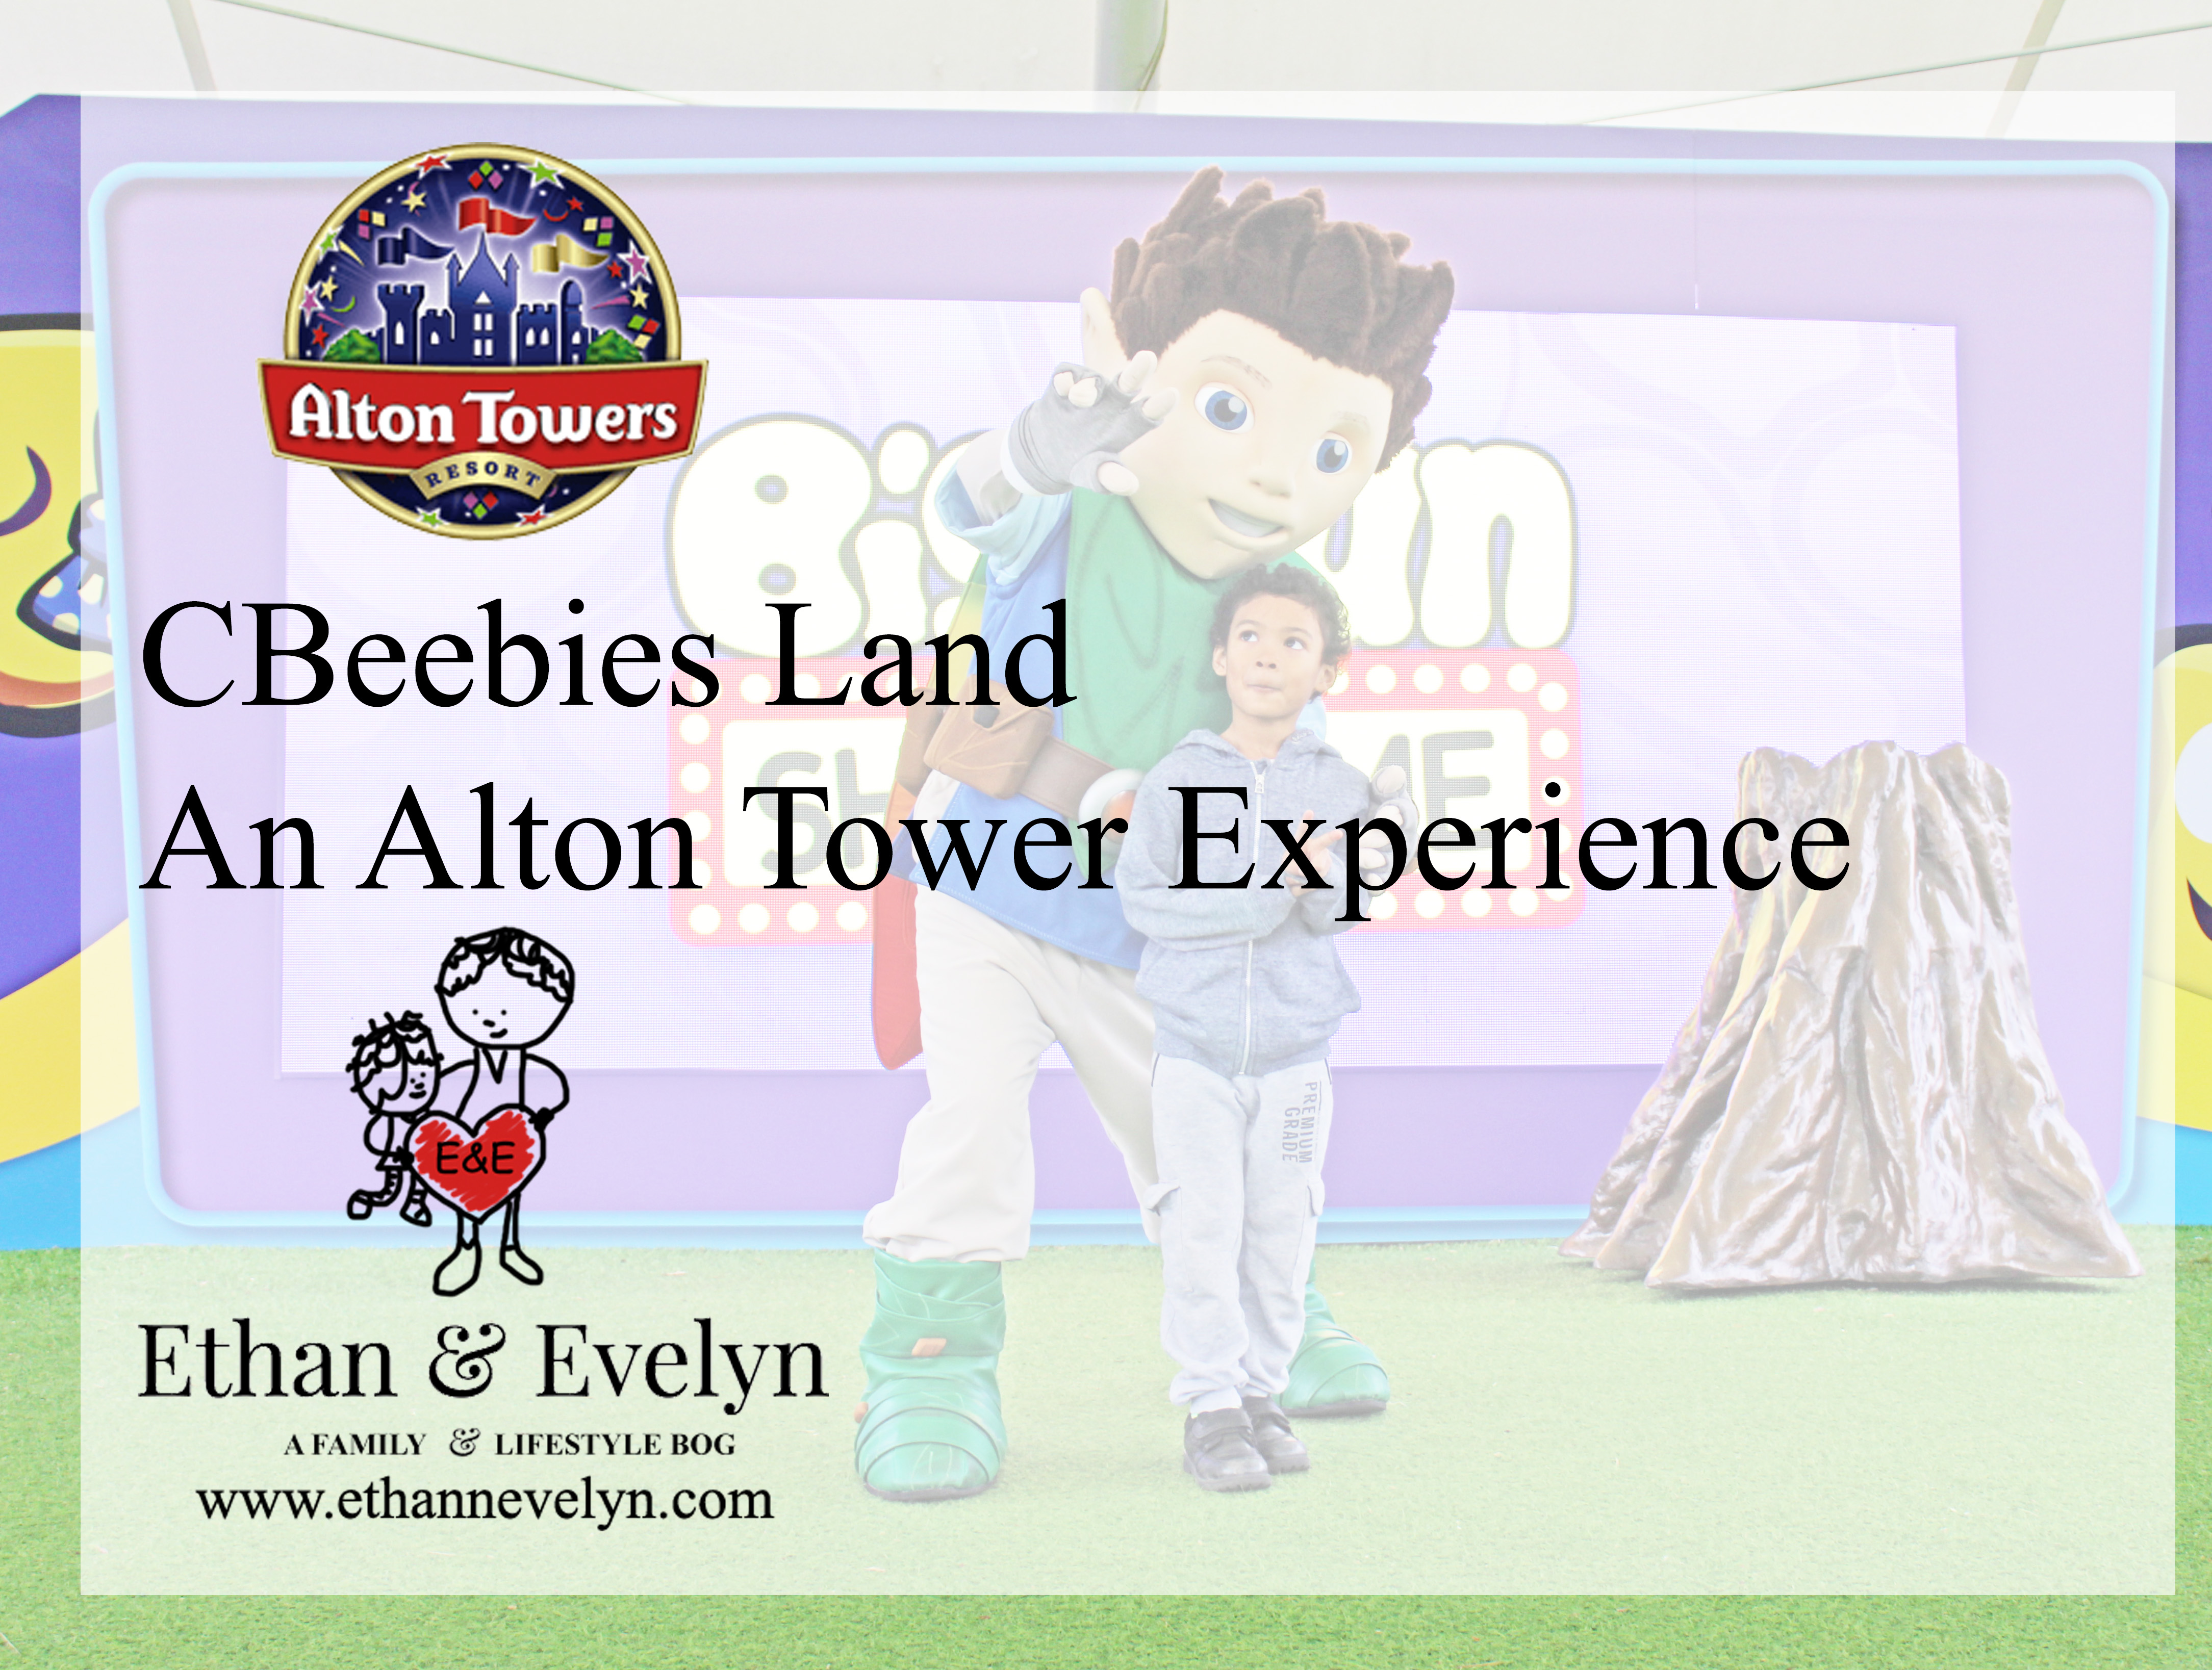 CBeebies Land - An Alton Tower Experience